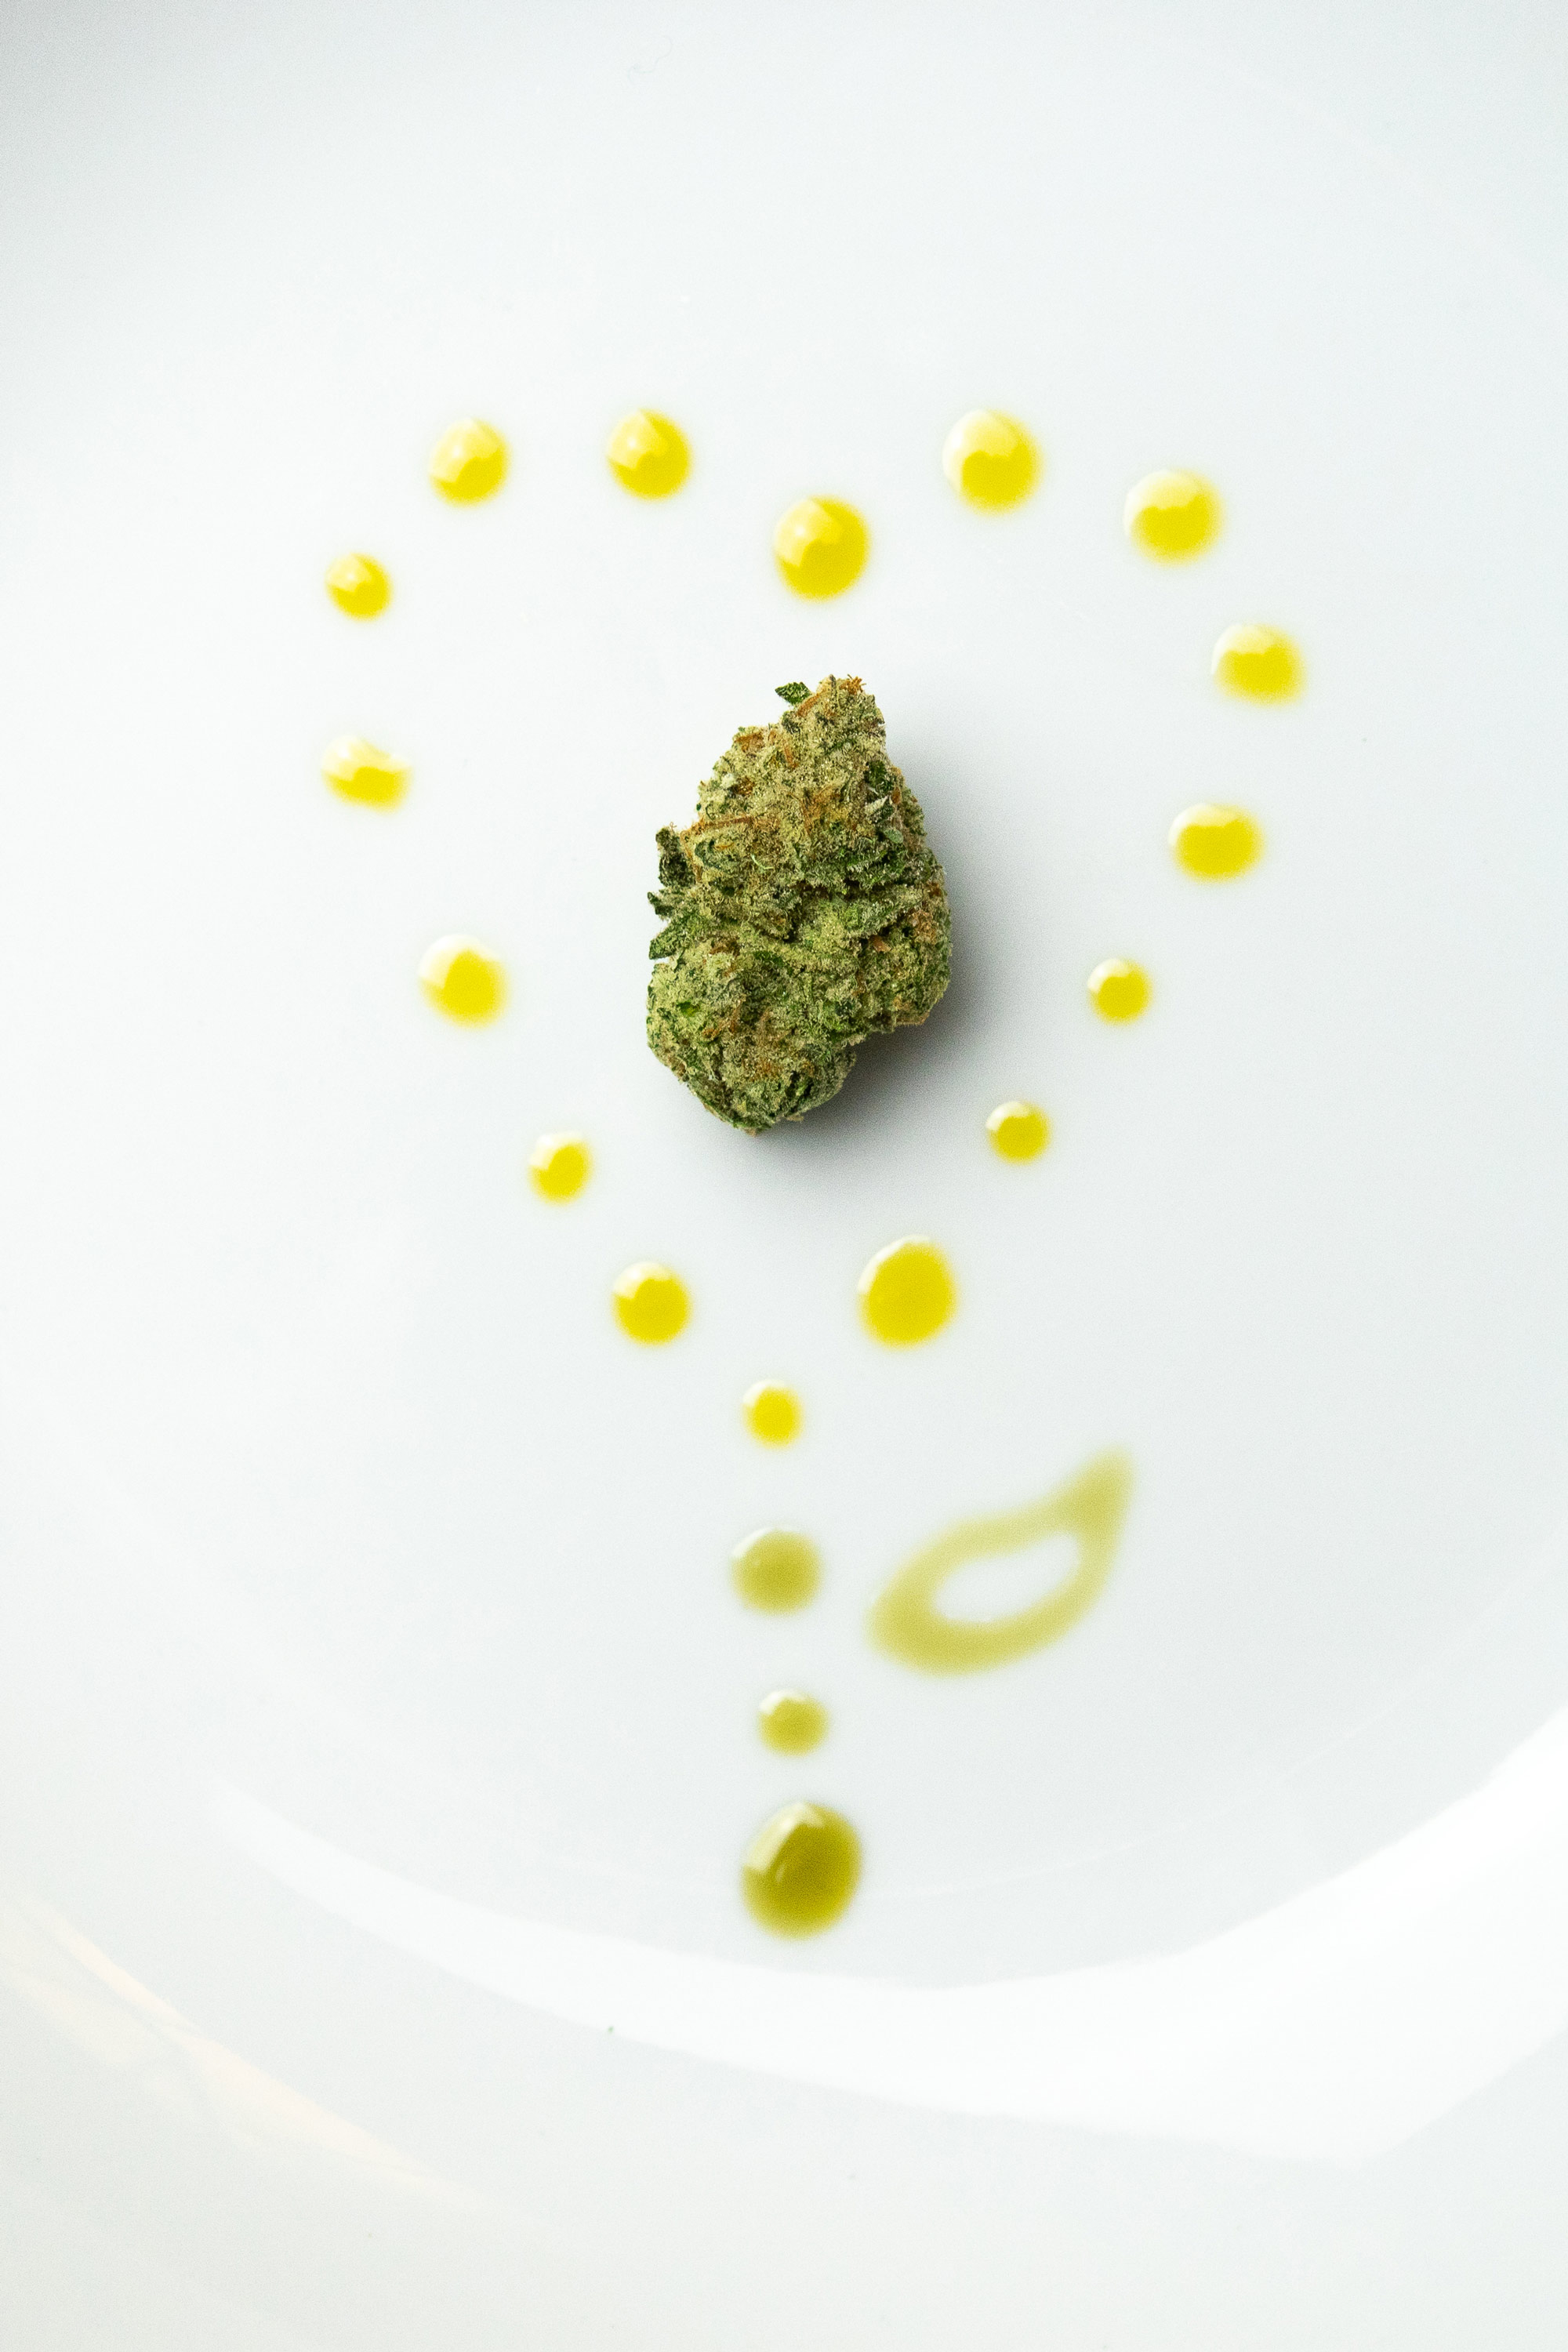 following license: English Cannabis Nug on a White Plate surrounded by Cannabis Oil in a Heart Shape with a Leaf URL: https://commons.wikimedia.org/wiki/user:Sherpa_SEO